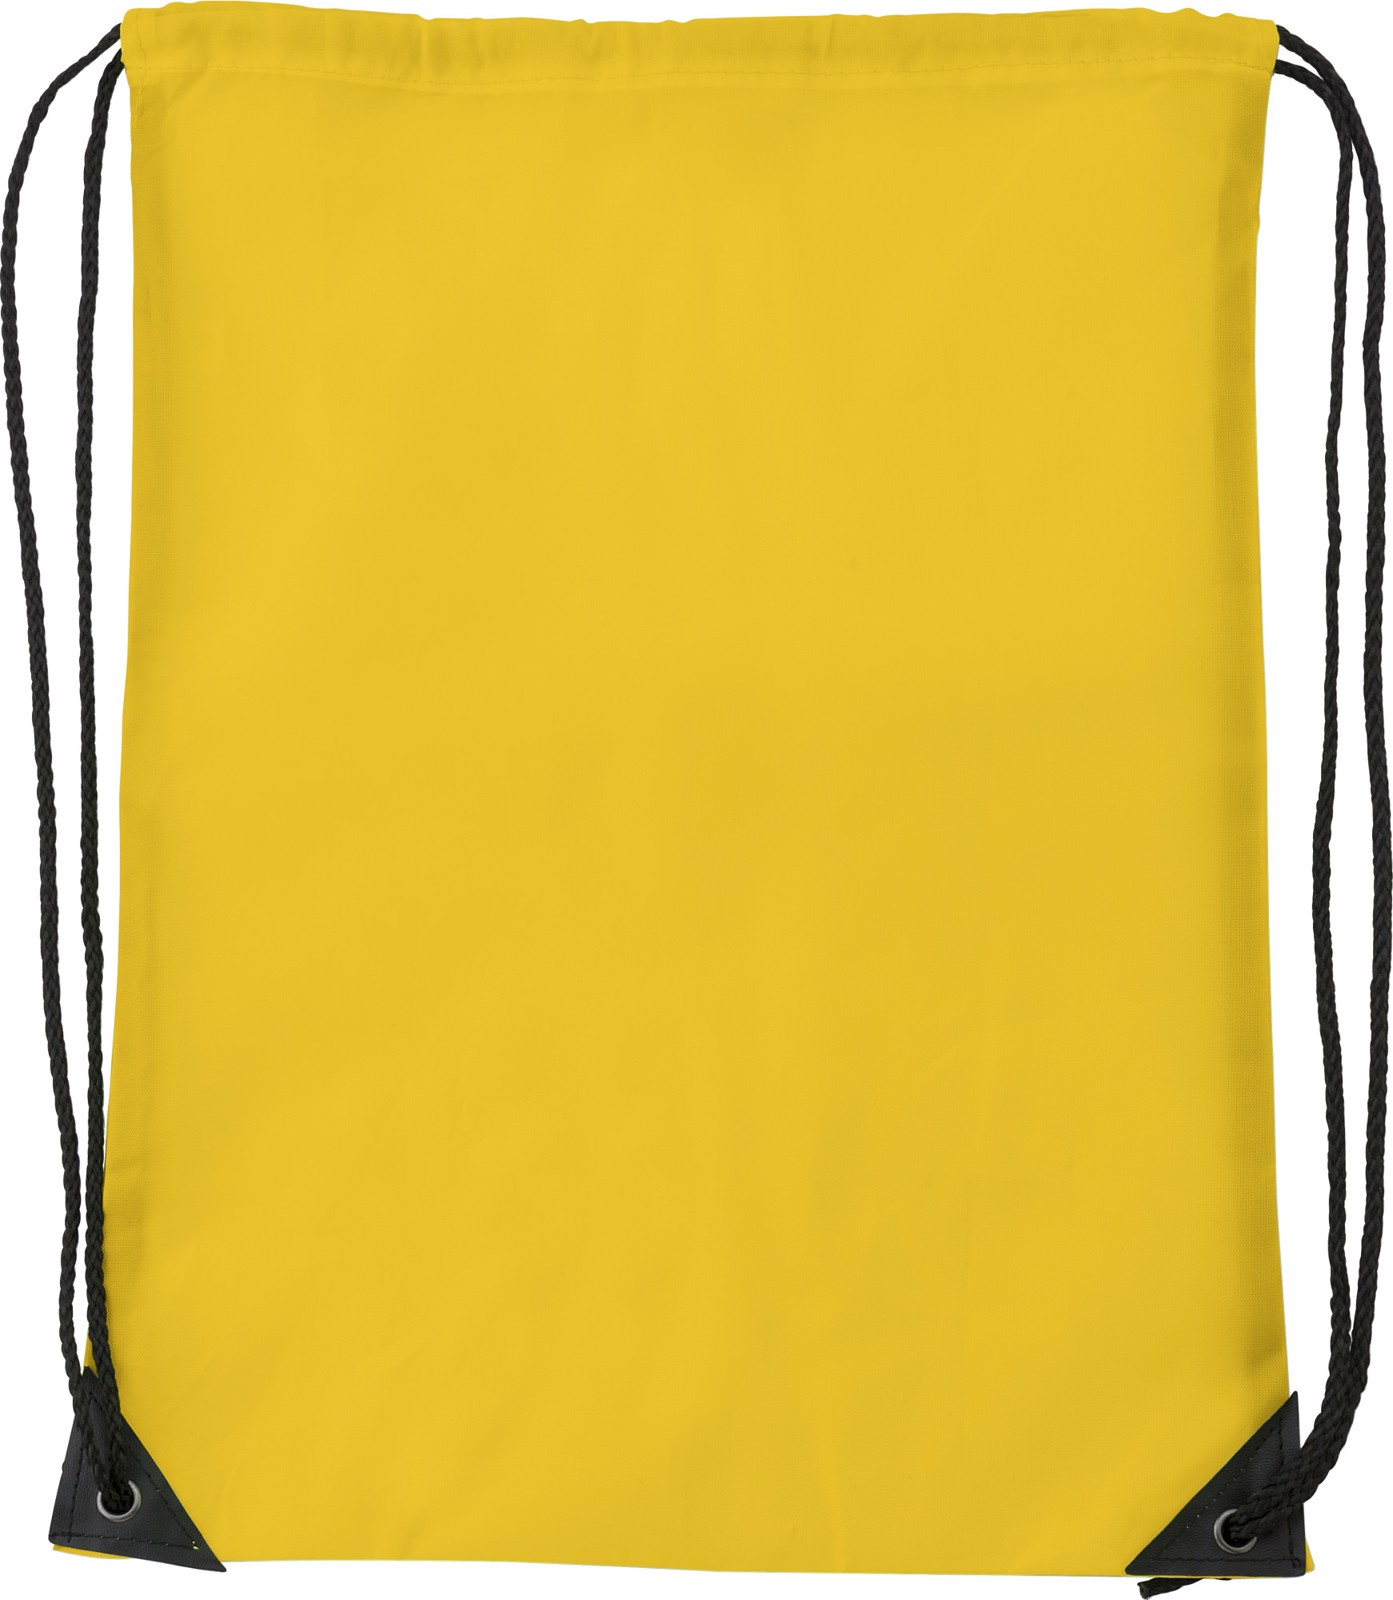 Polyester (210D) drawstring backpack - Yellow